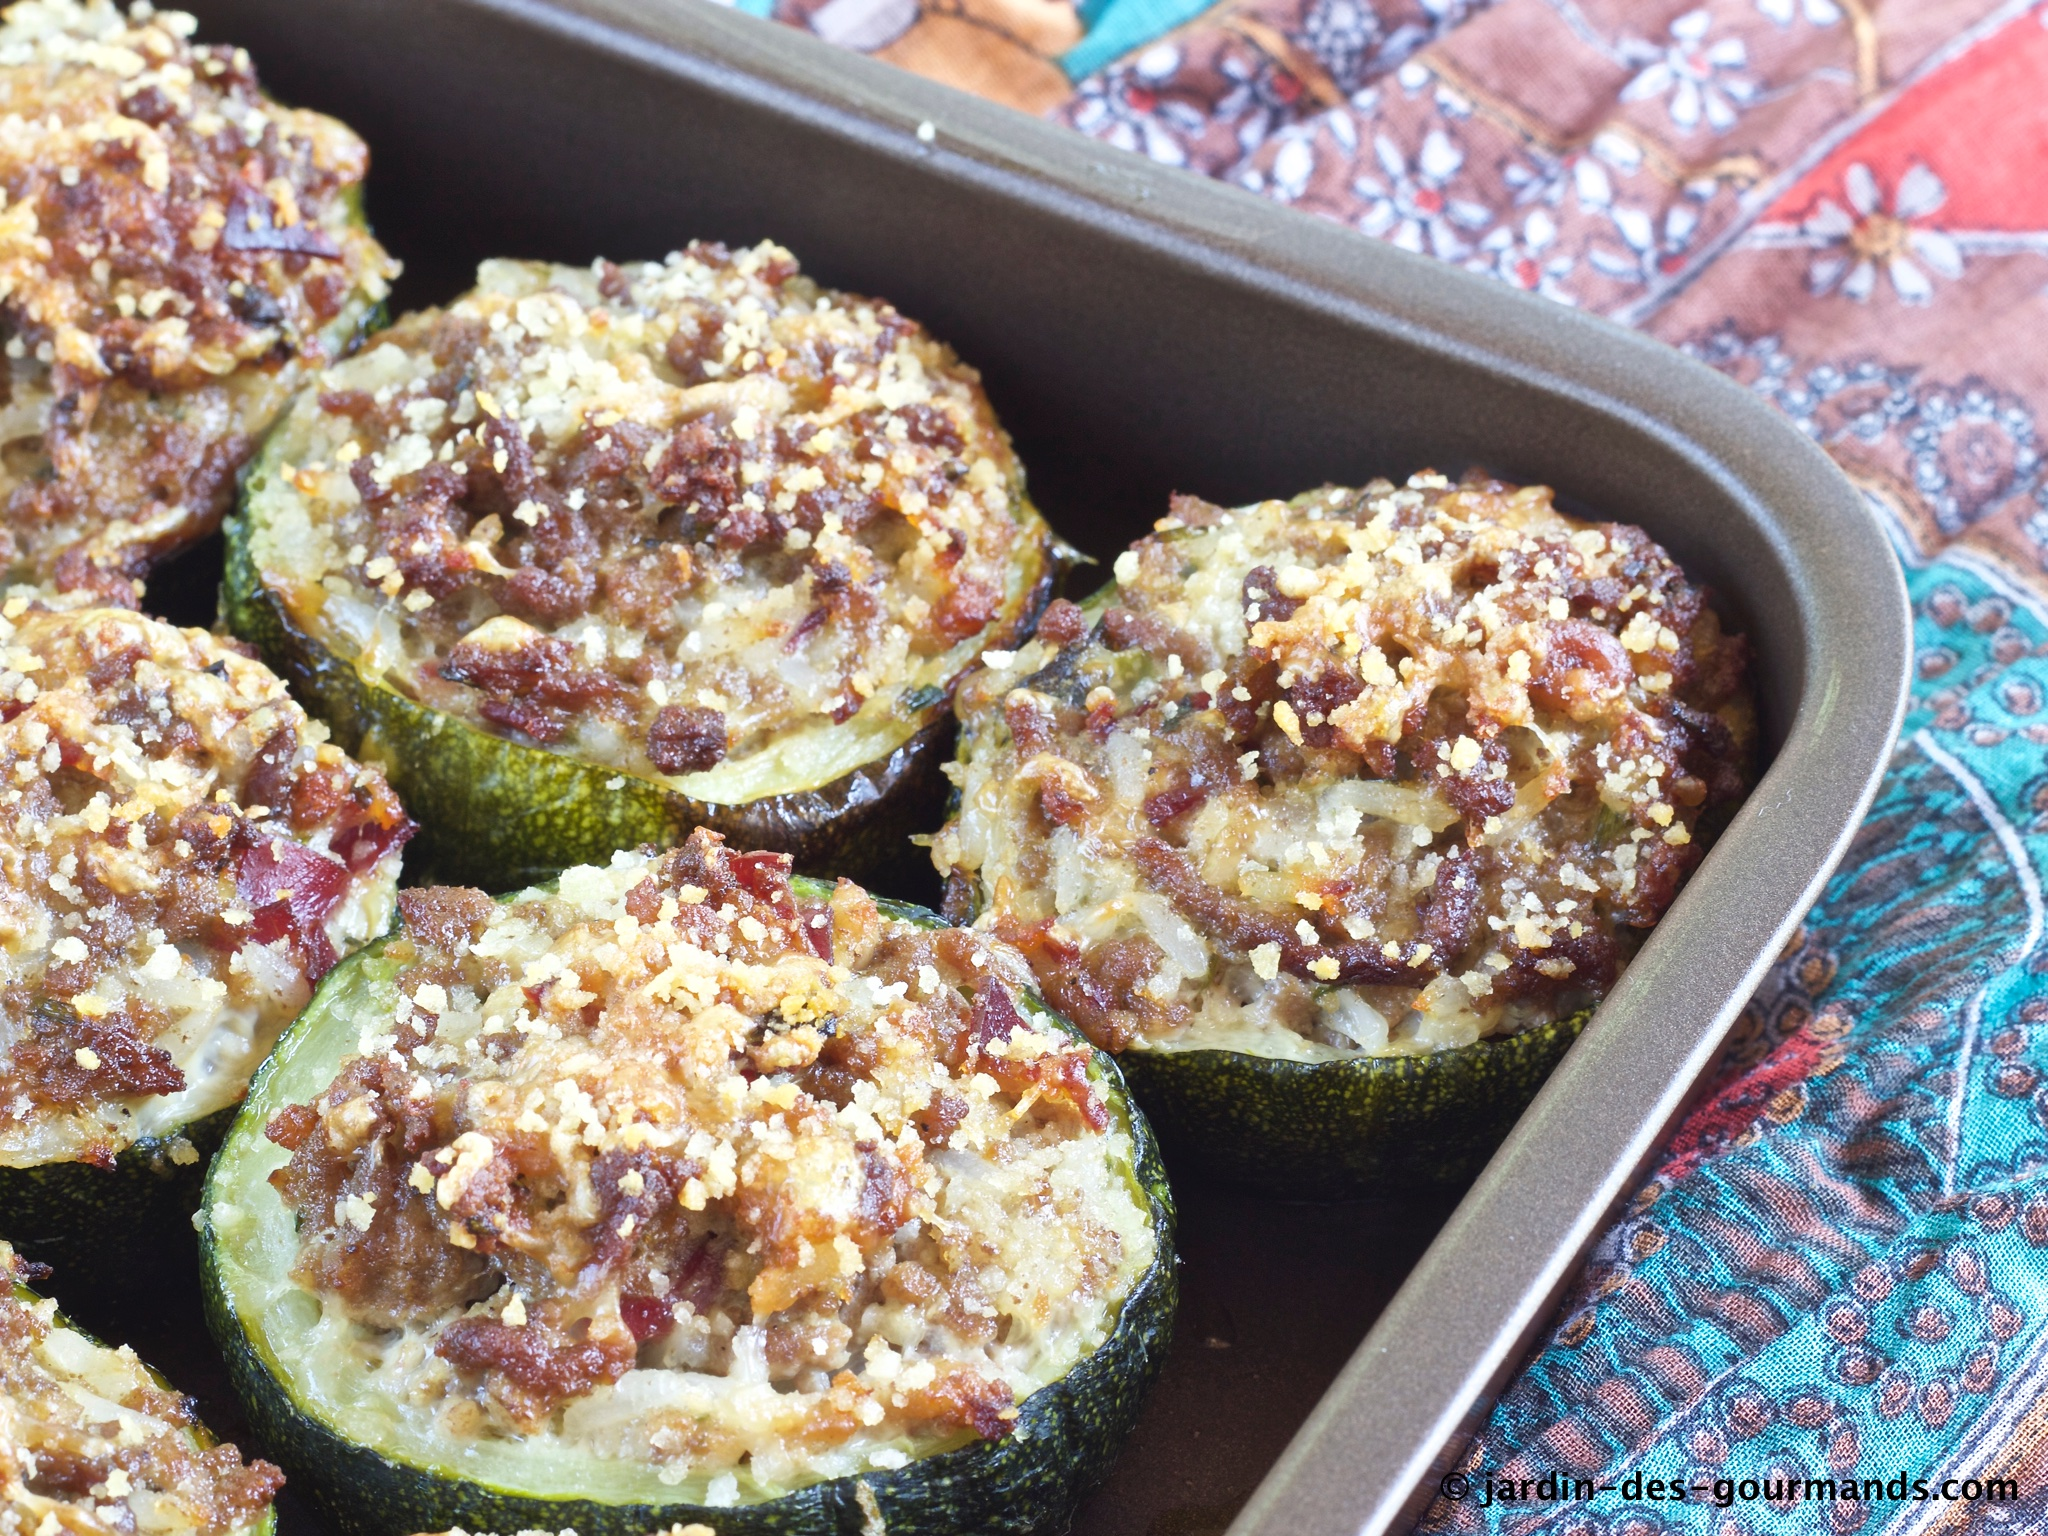 COURGETTES FARCIES 2